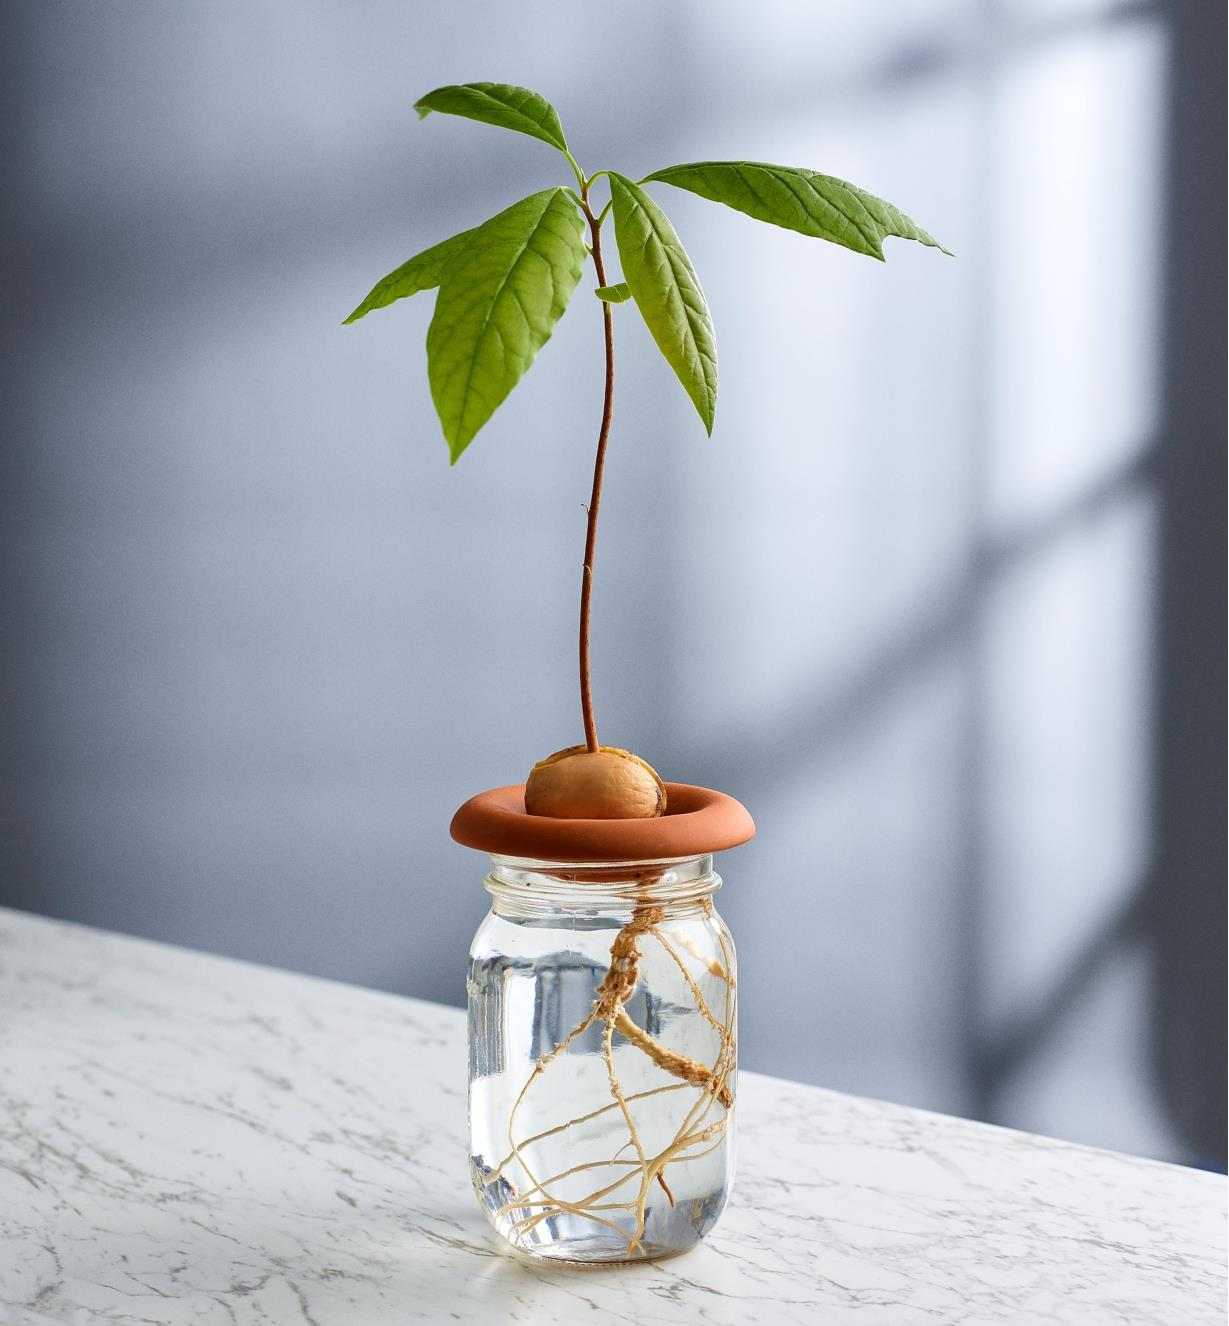 An avocado seedling being sprouted in a terra cotta sprouter placed on top of a jar of water